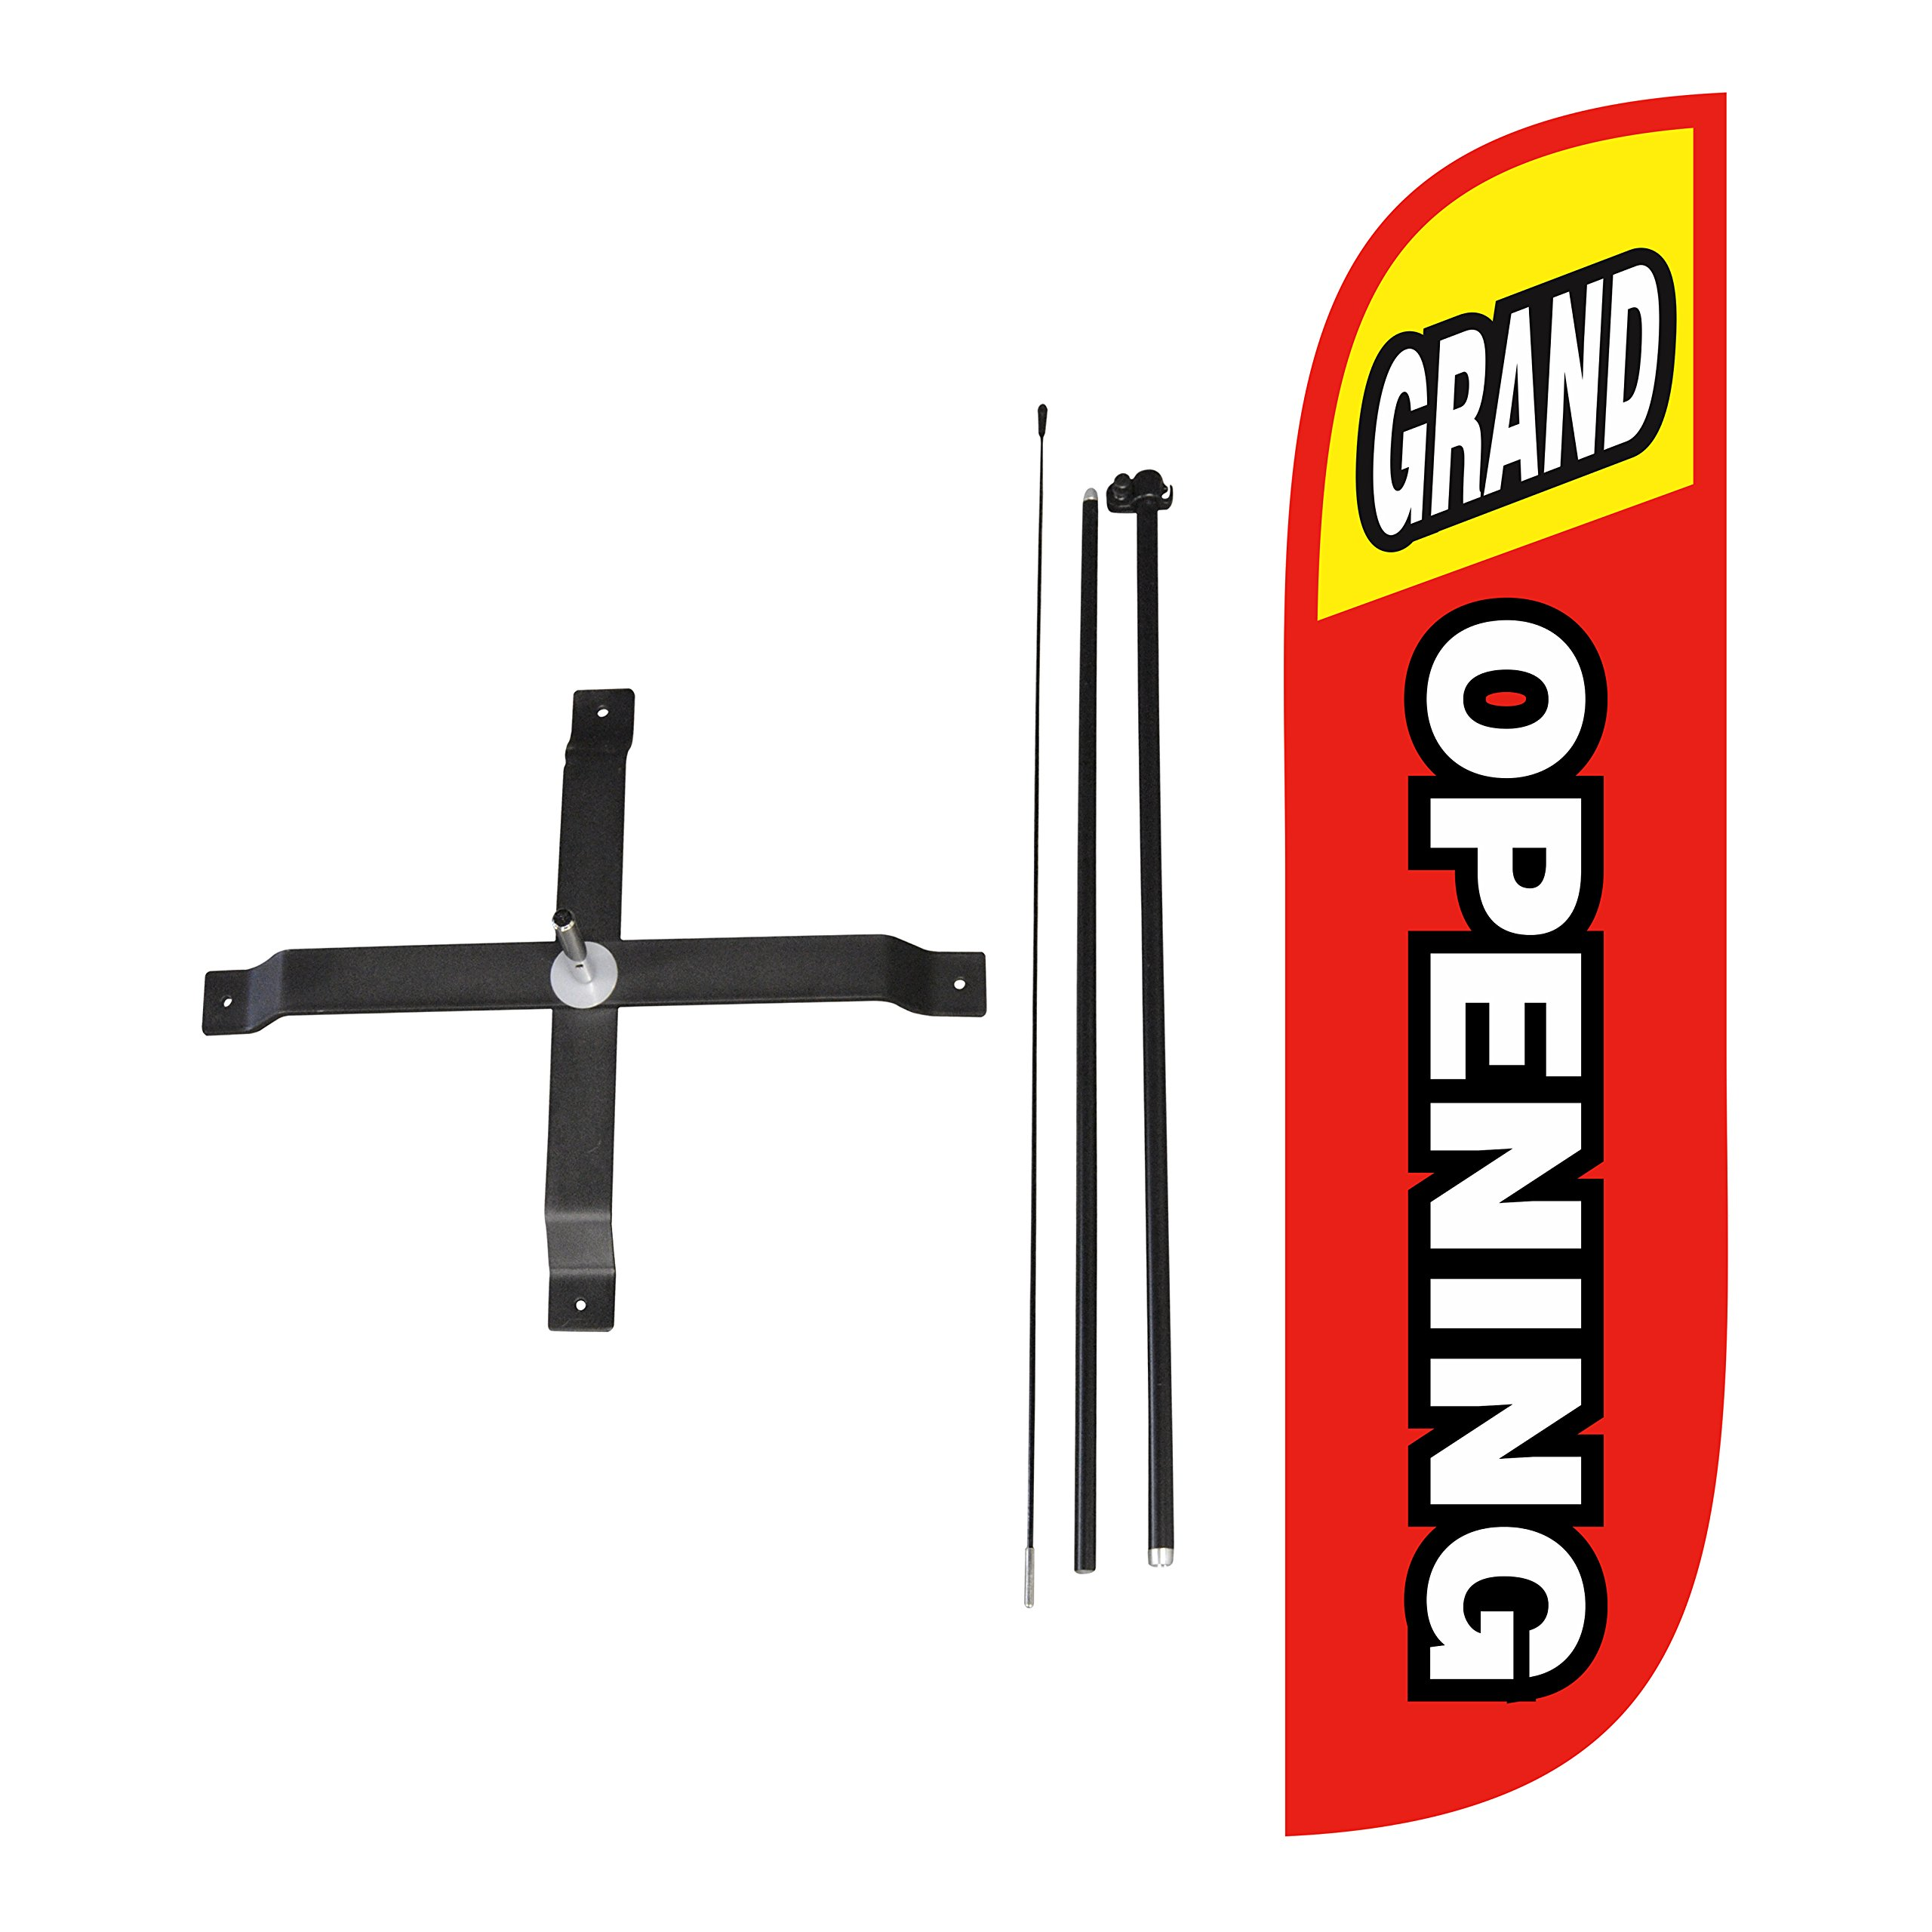 LookOurWay Grand Opening Red & Yellow Feather Flag Complete Set with Poles & X-Stand, 5-Feet